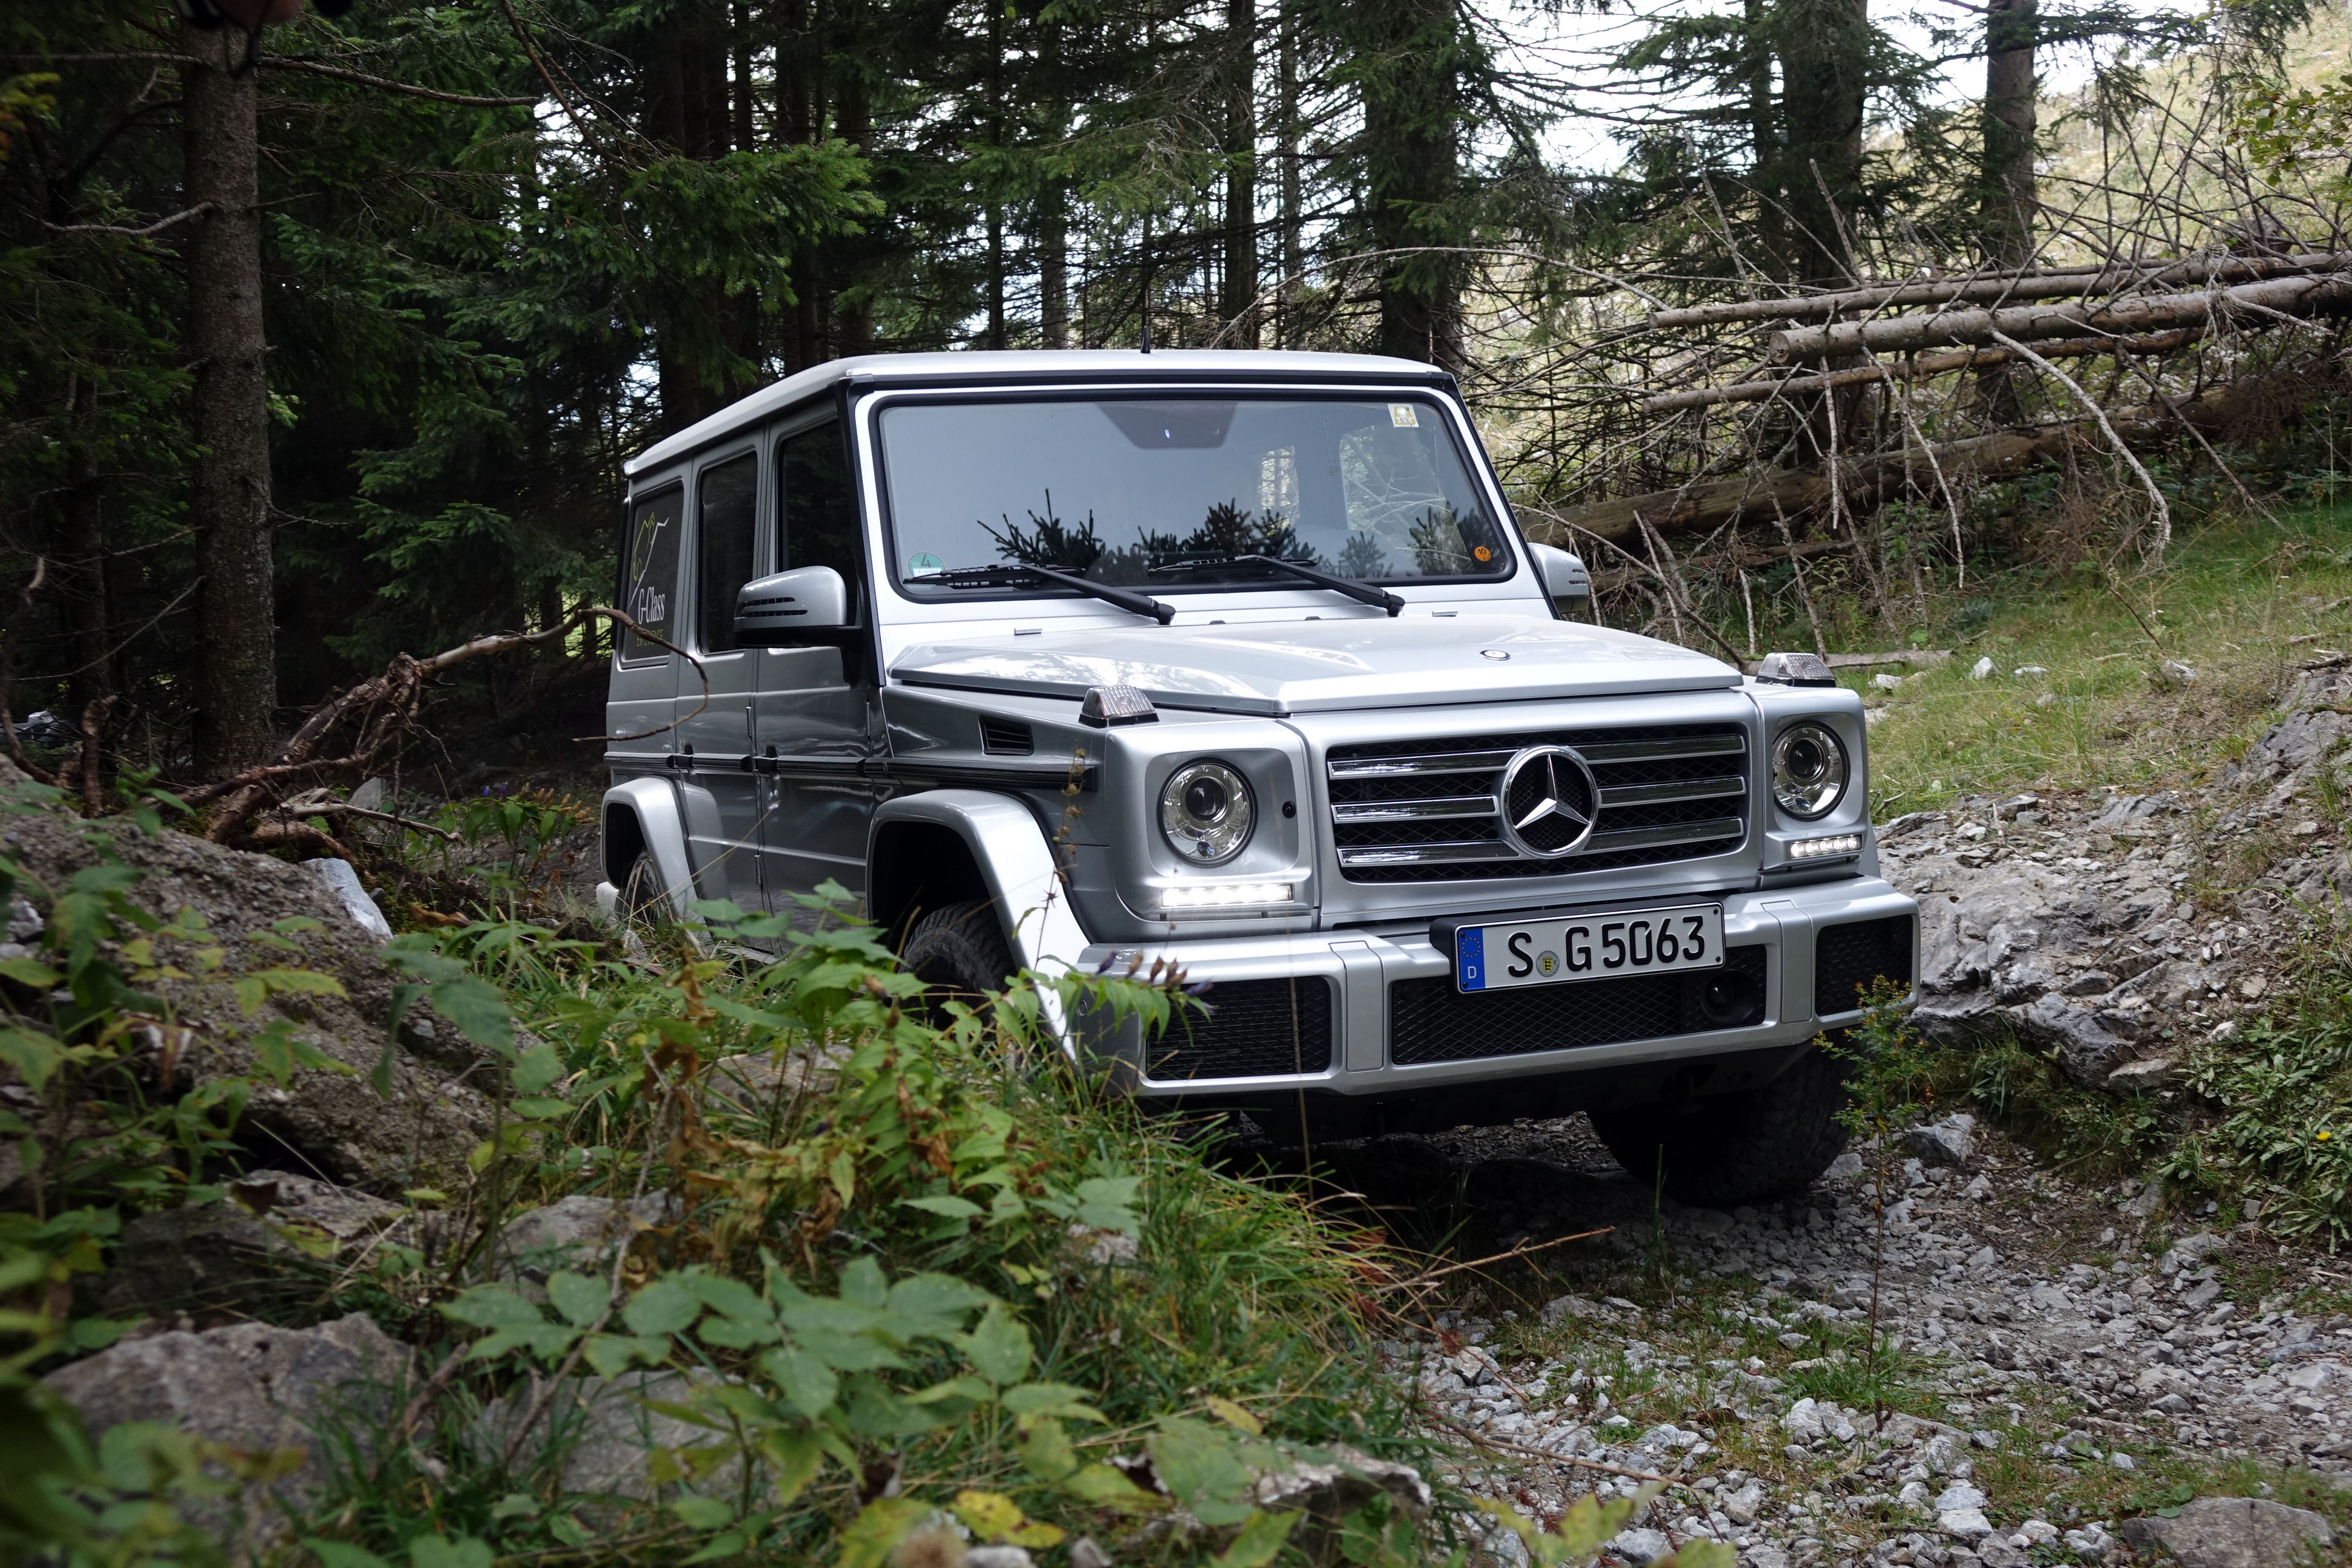 Relic or thrill ride up a mountain in a mercedes benz g class for Mercedes benz portal axles